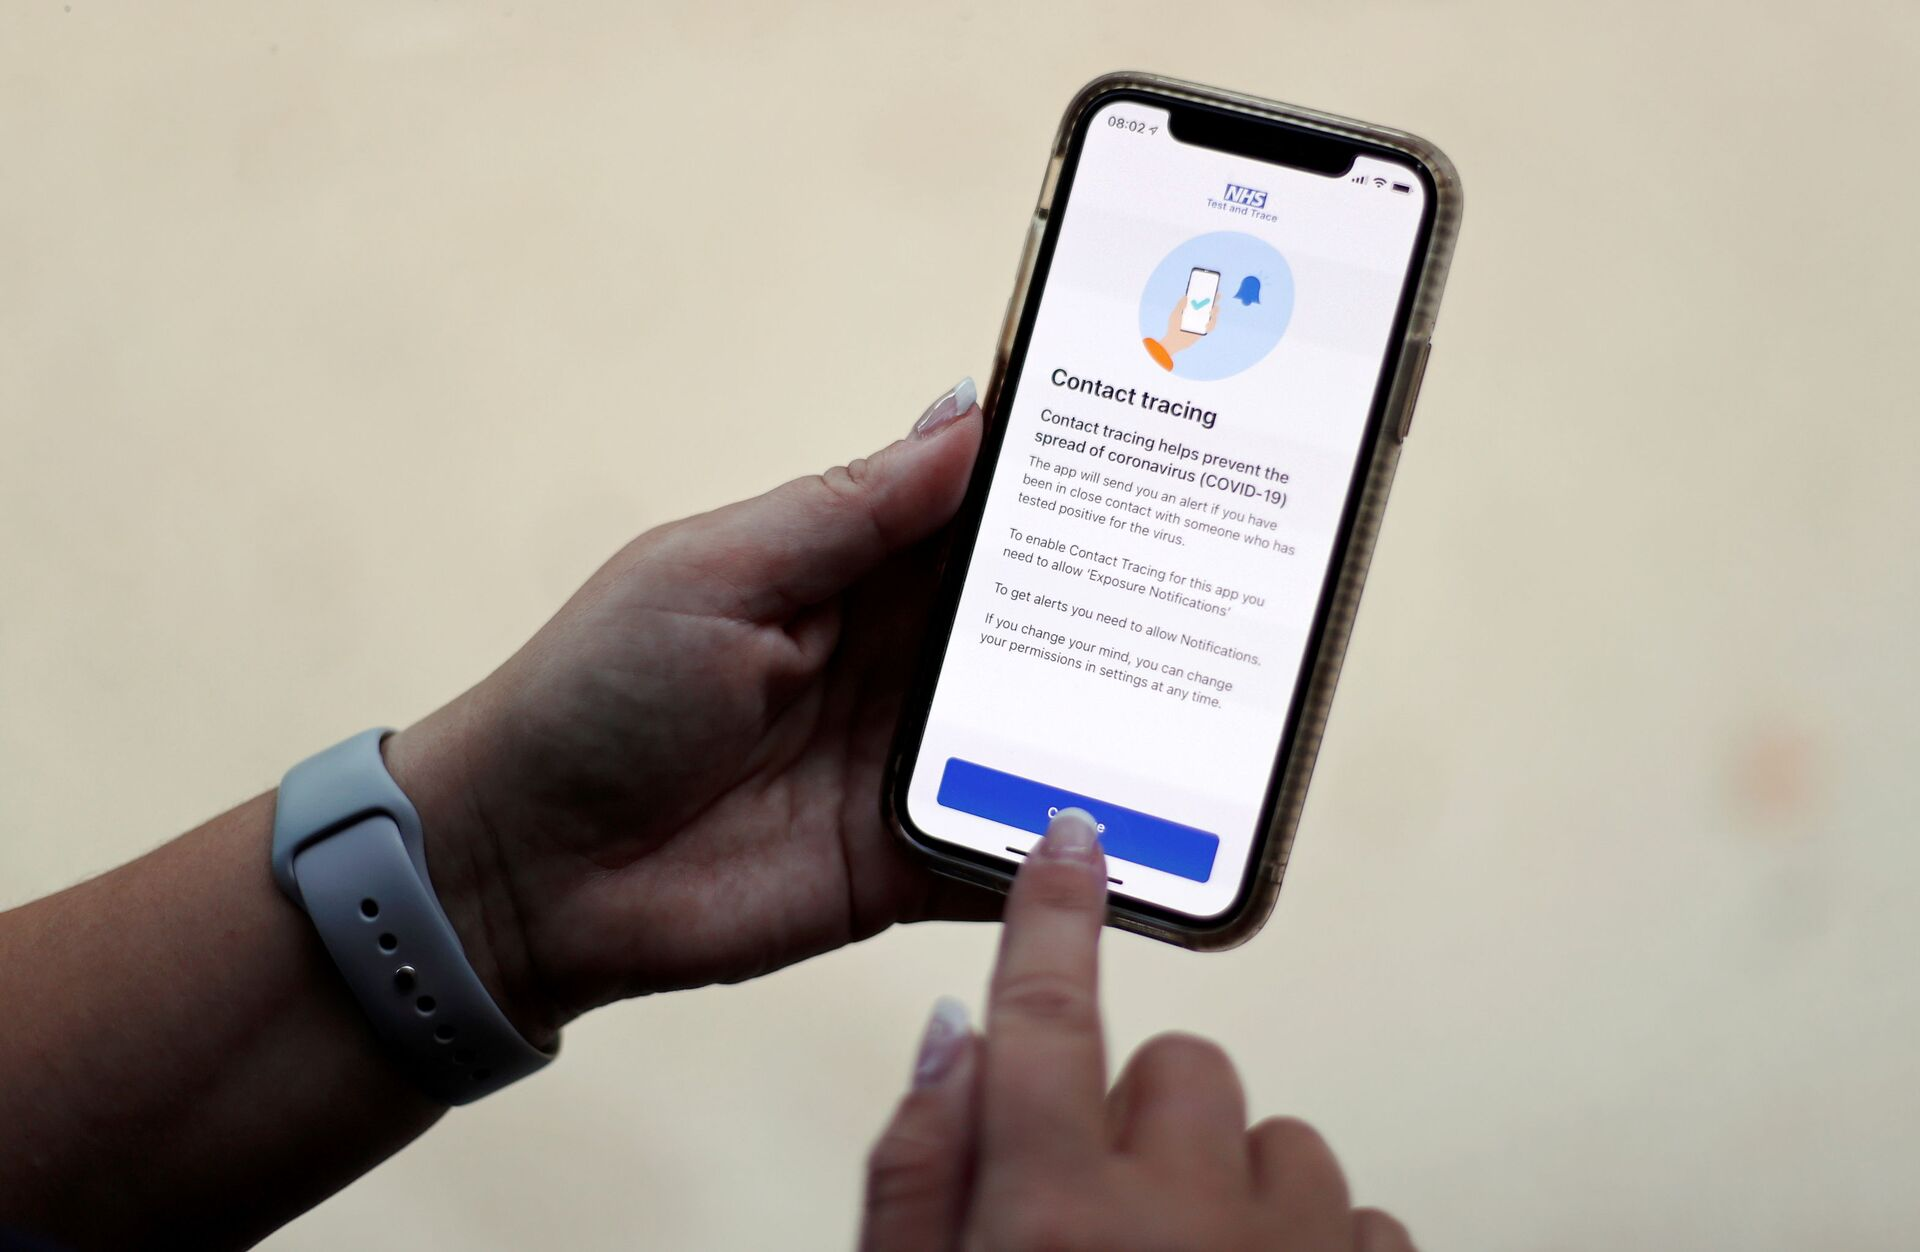 FILE PHOTO: The coronavirus disease (COVID-19) contact tracing smartphone app of Britain's National Health Service (NHS) is displayed on an iPhone in this illustration photograph taken in Keele, Britain, September 24, 2020.  - Sputnik International, 1920, 07.09.2021